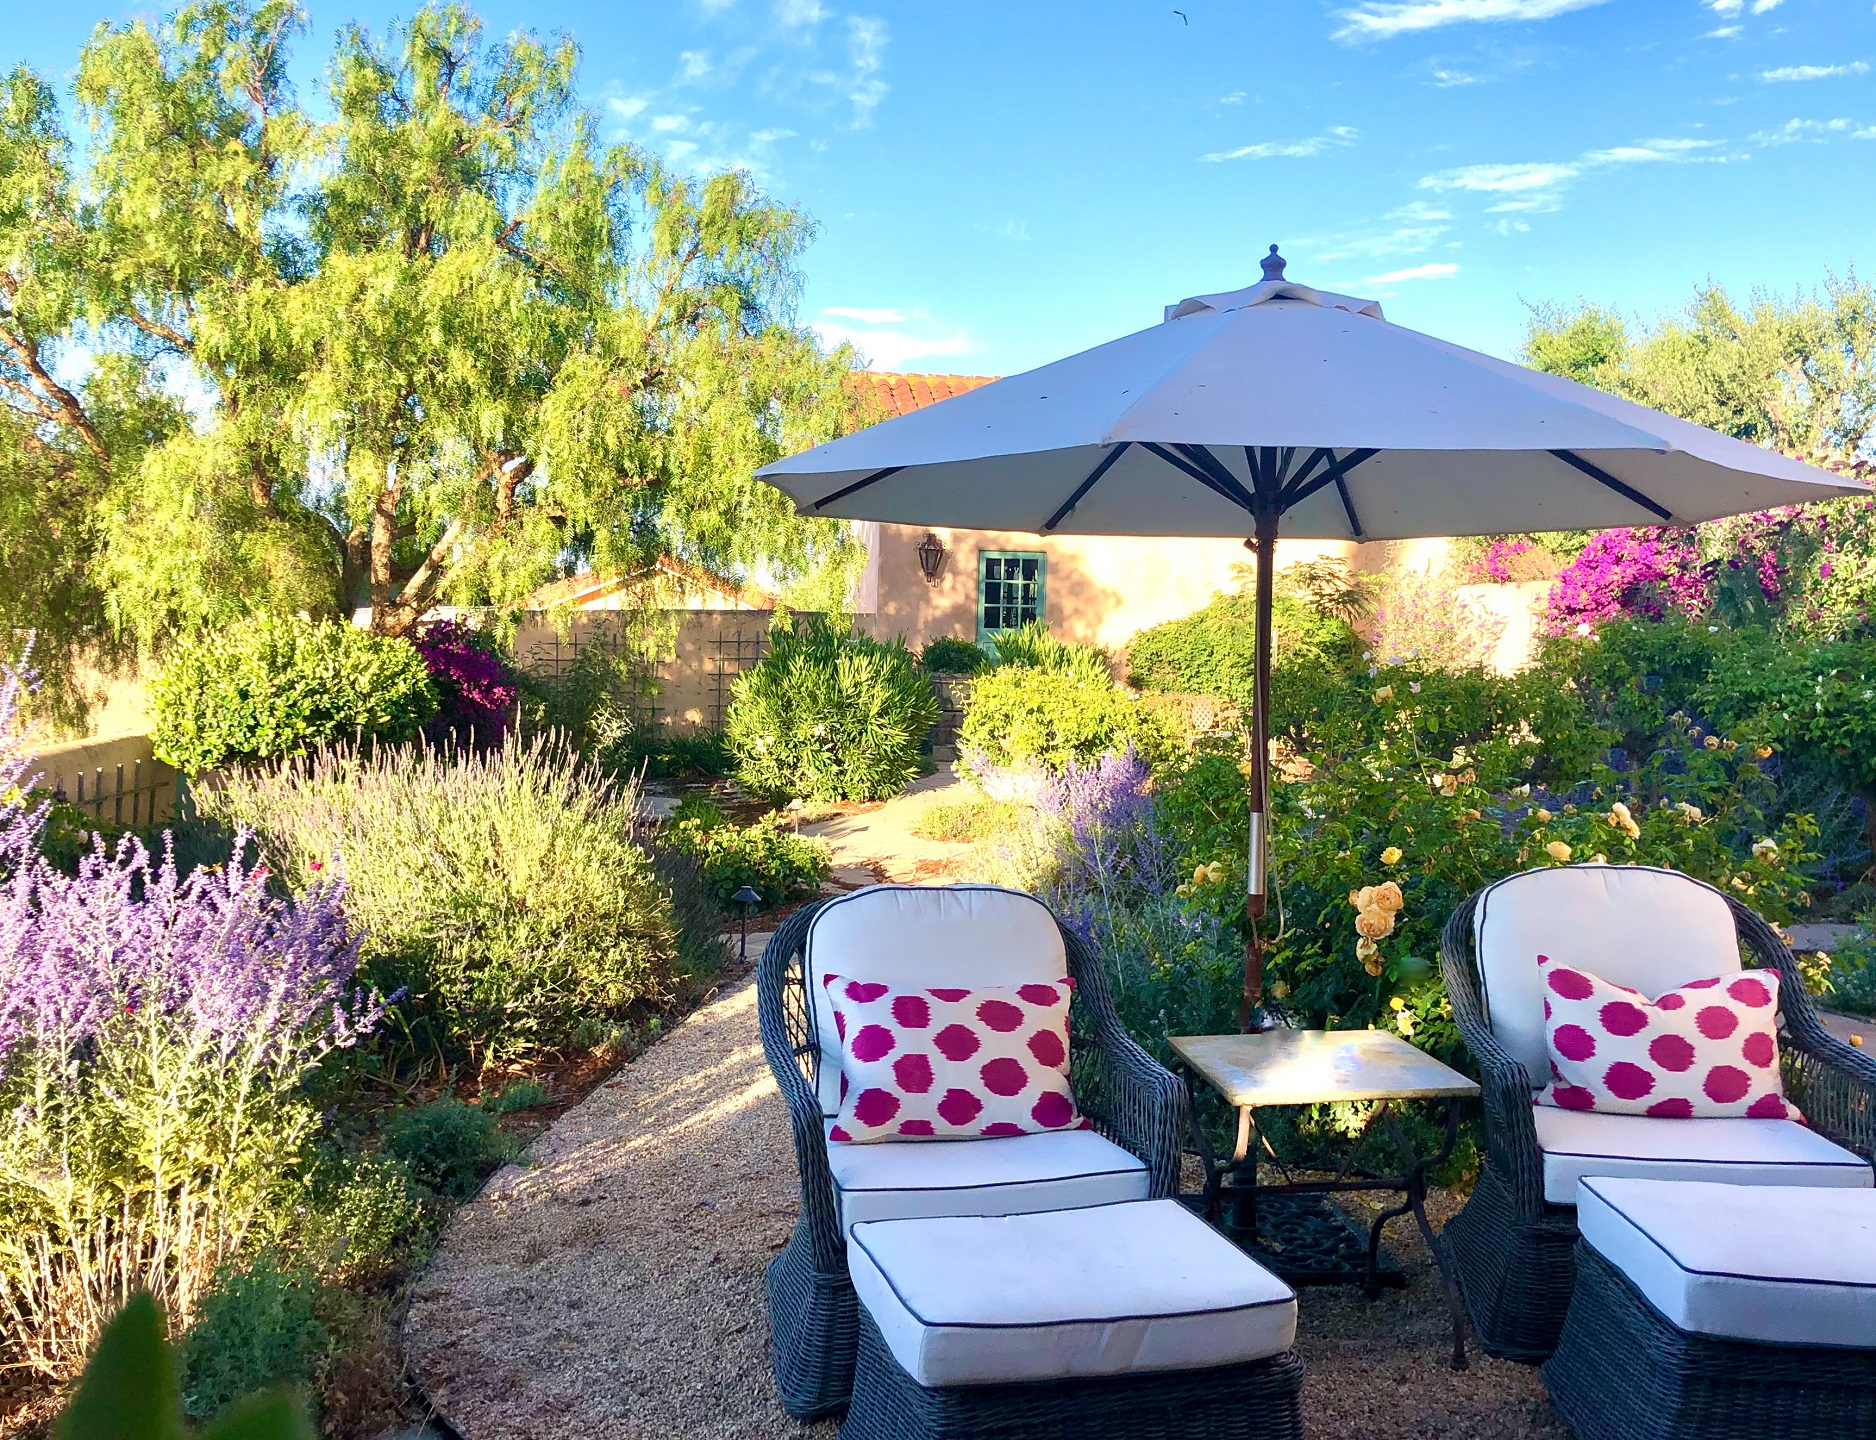 design blogger cindy hattersley's rose garden with lounge chairs